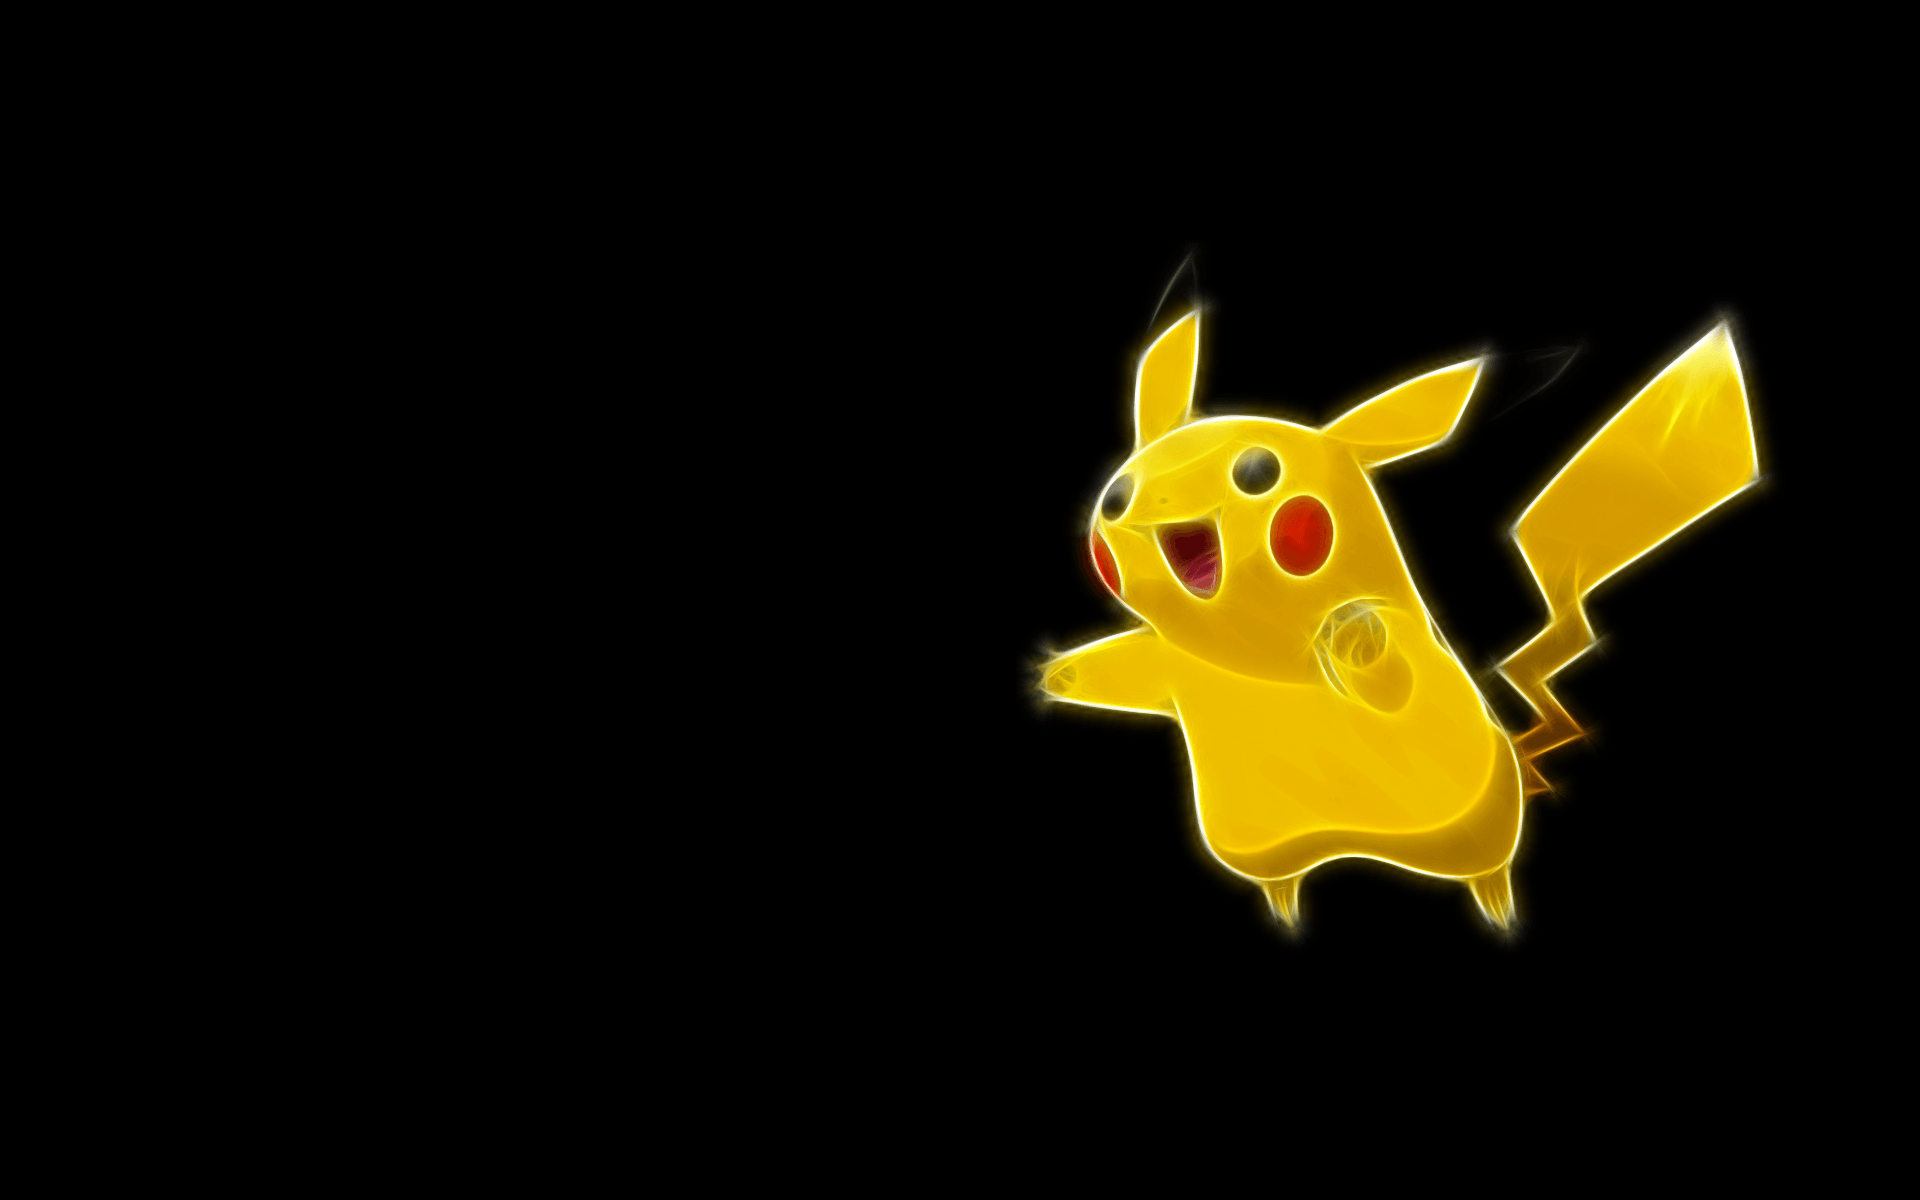 Pokemon Wallpapers Pikachu - Wallpaper Cave